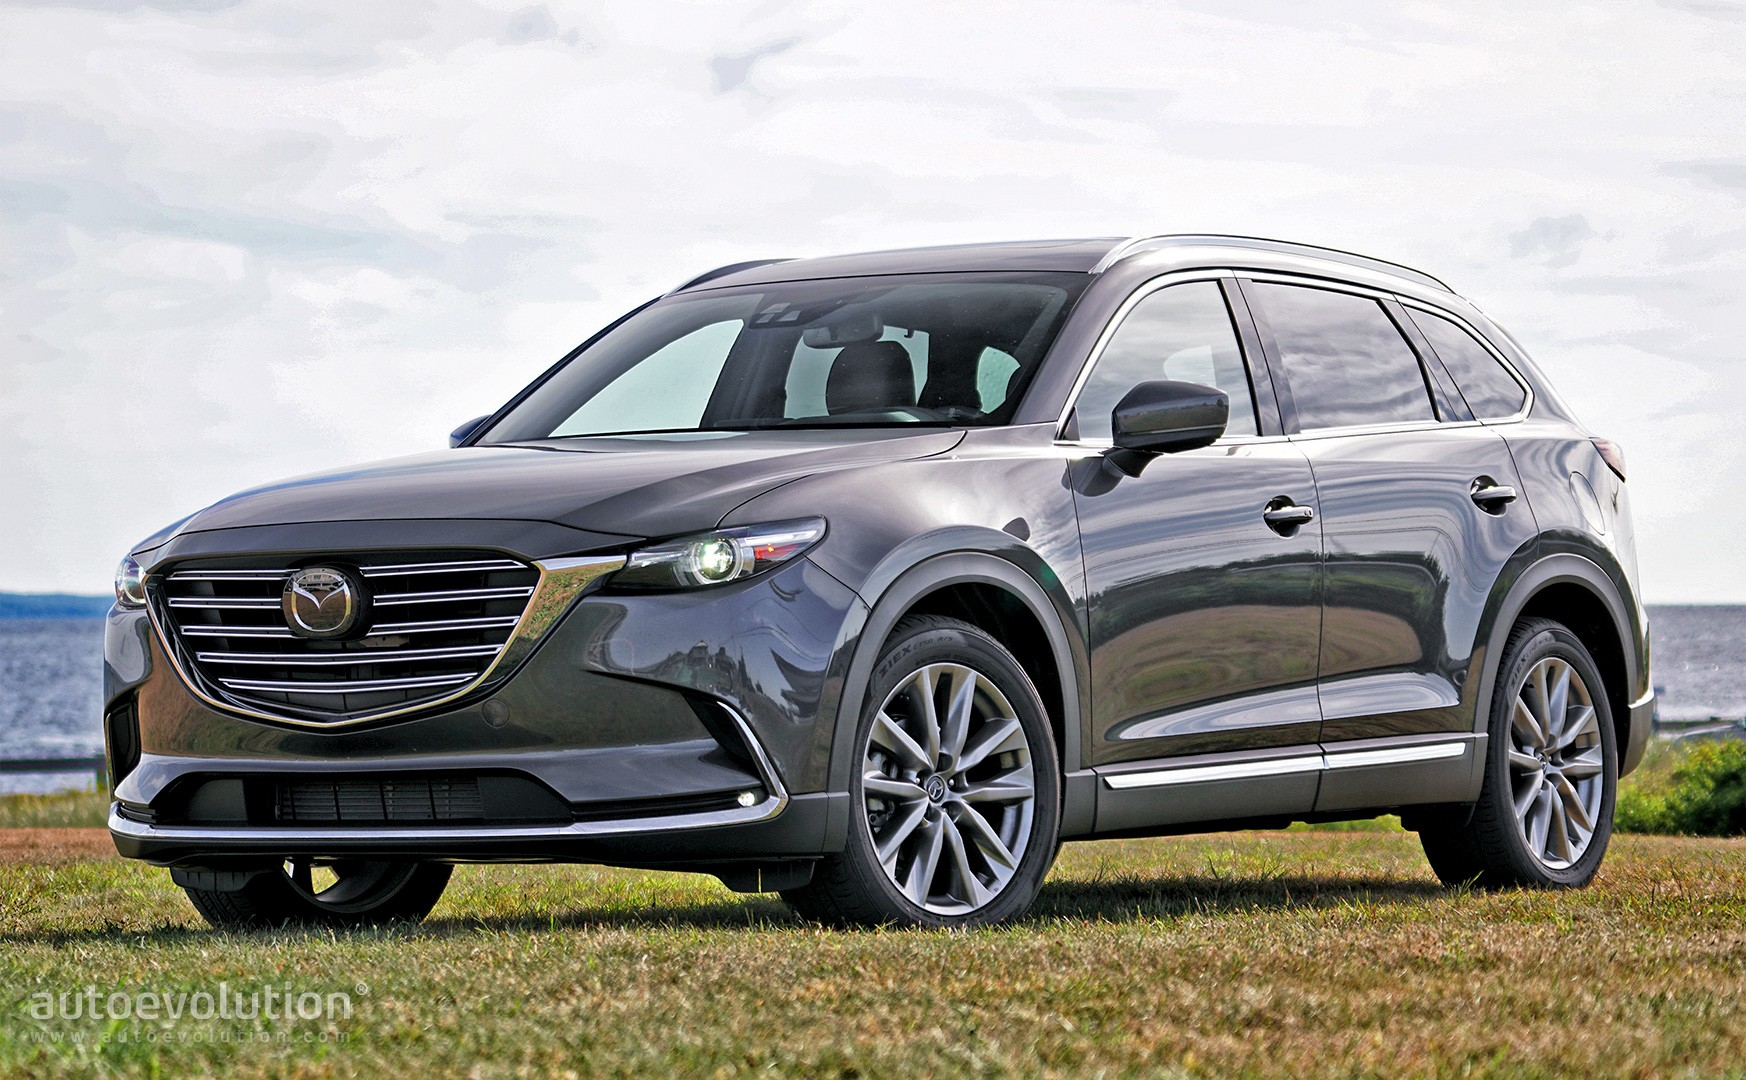 8 Passenger Suv >> Driven: 2017 Mazda CX-9 Signature AWD - autoevolution